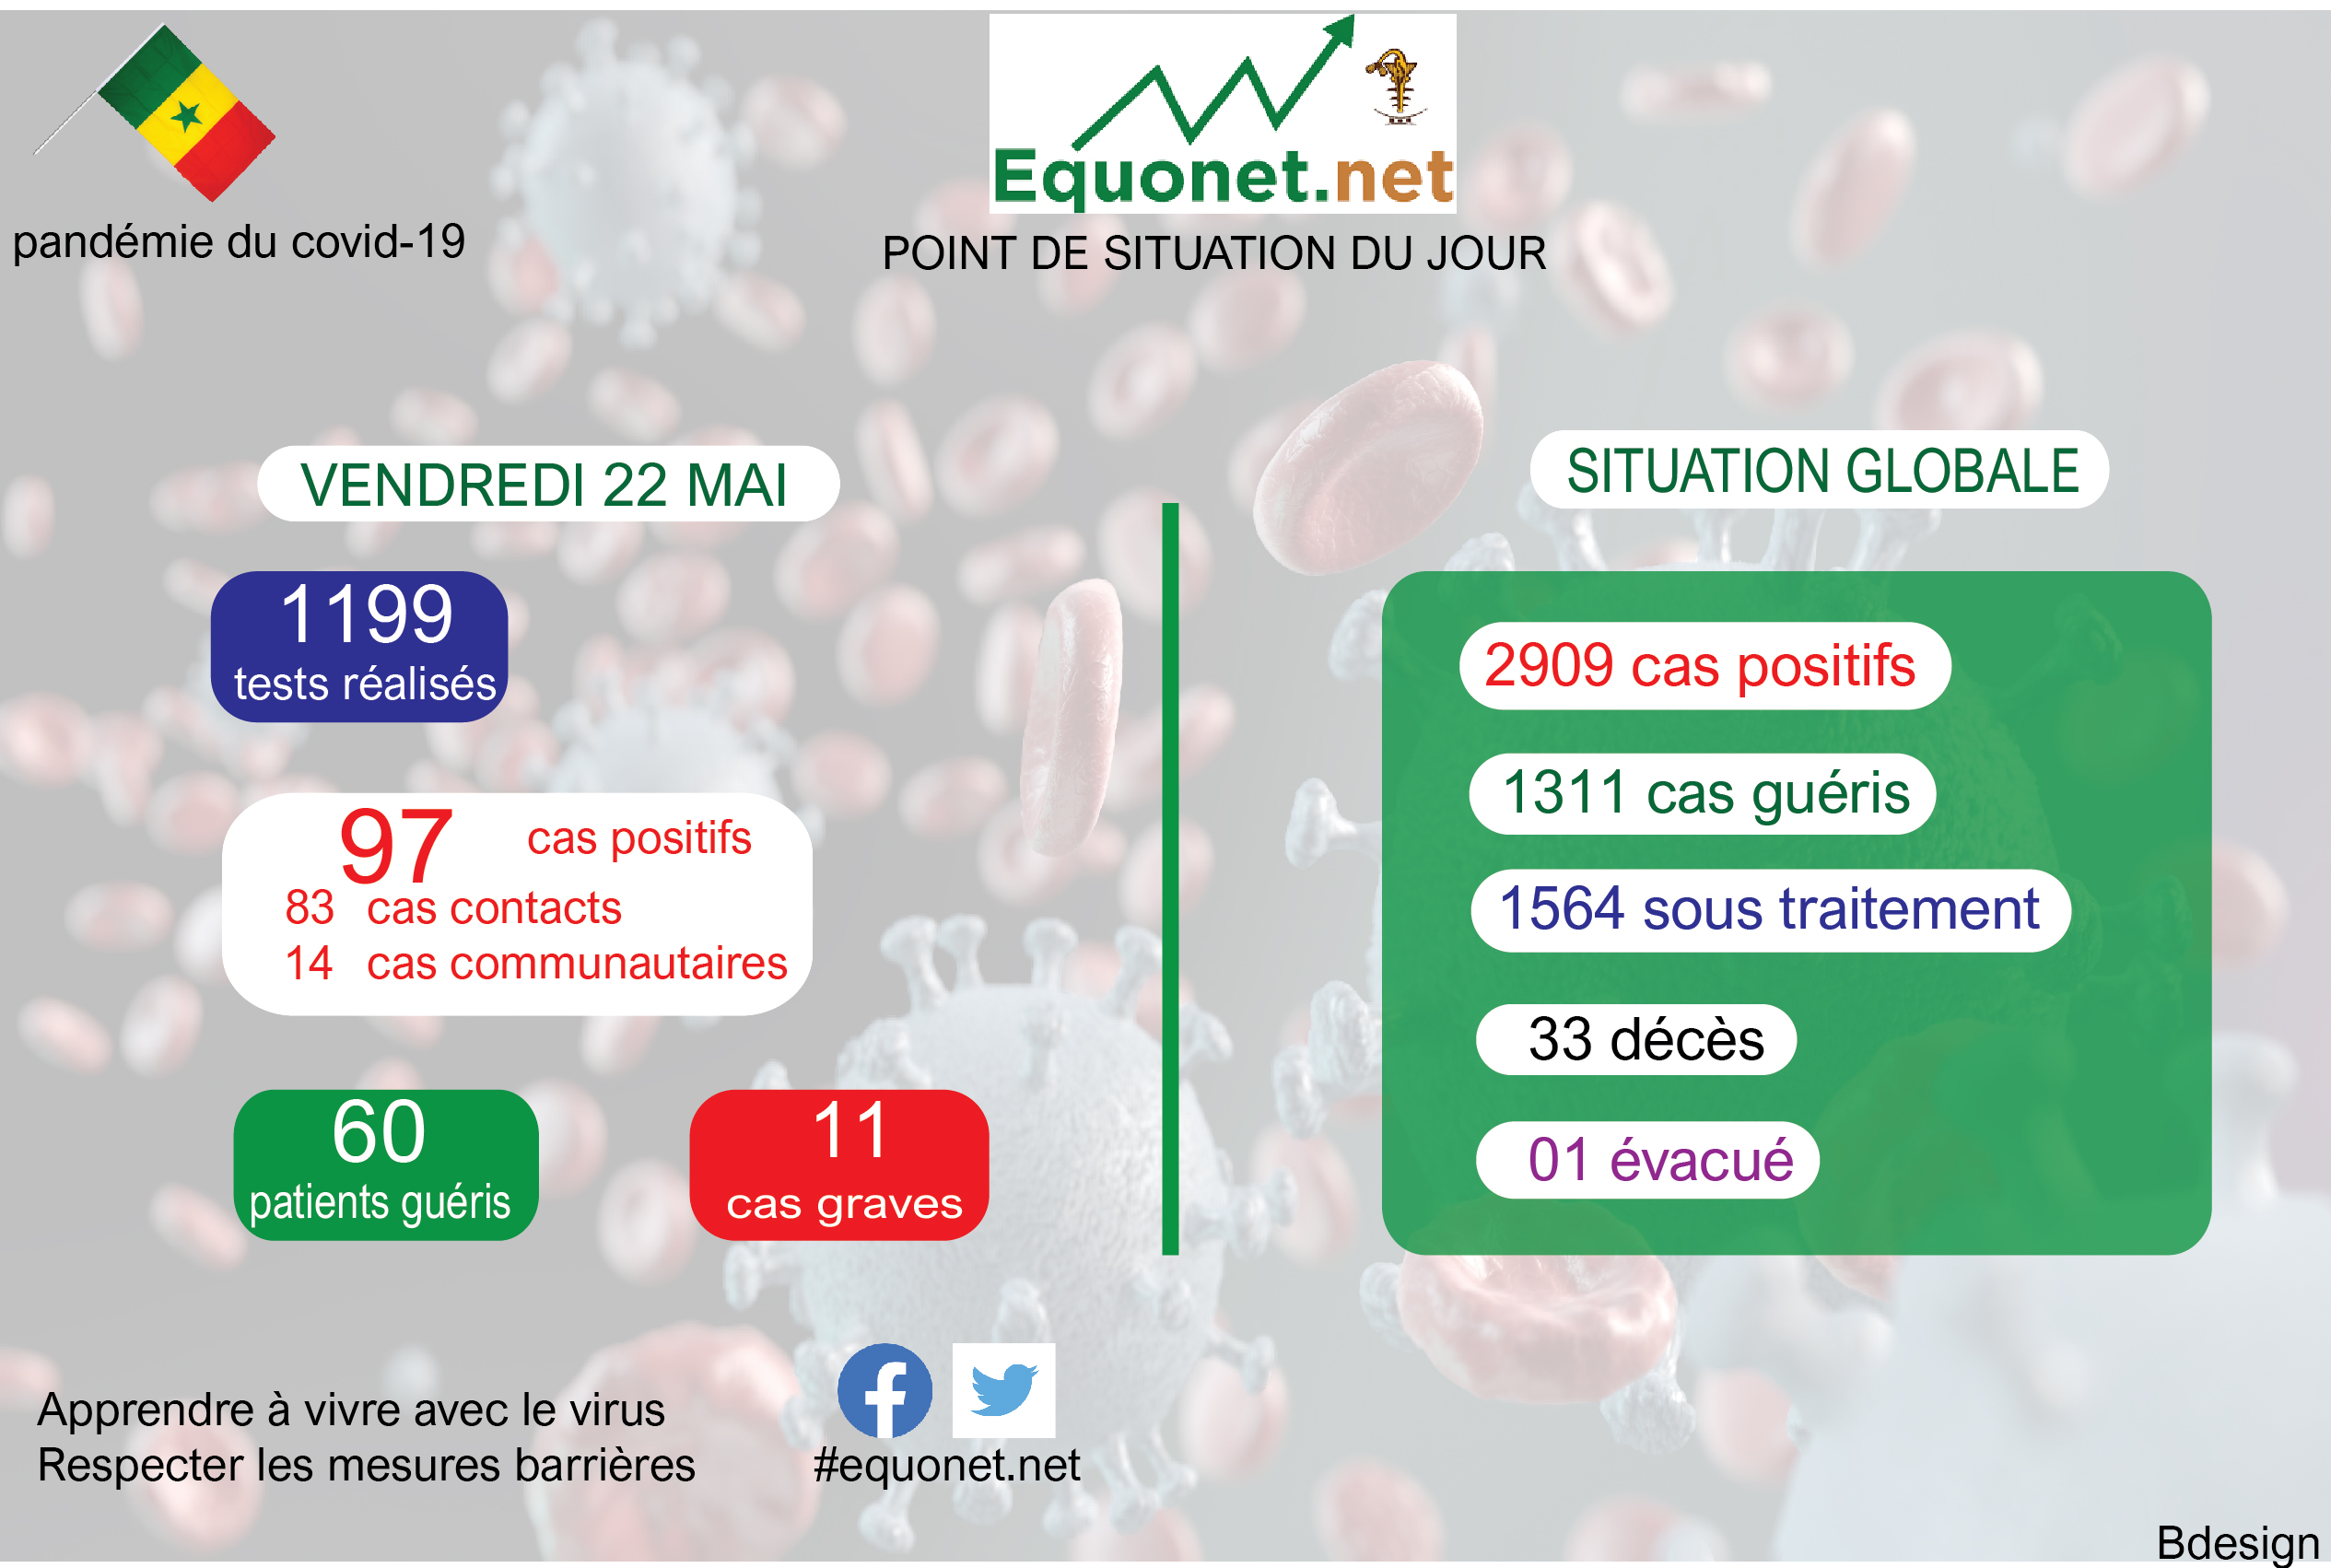 pandémie du coronavirus-covid-19 au sénégal : point de situation du vendredi 22 mai 2020